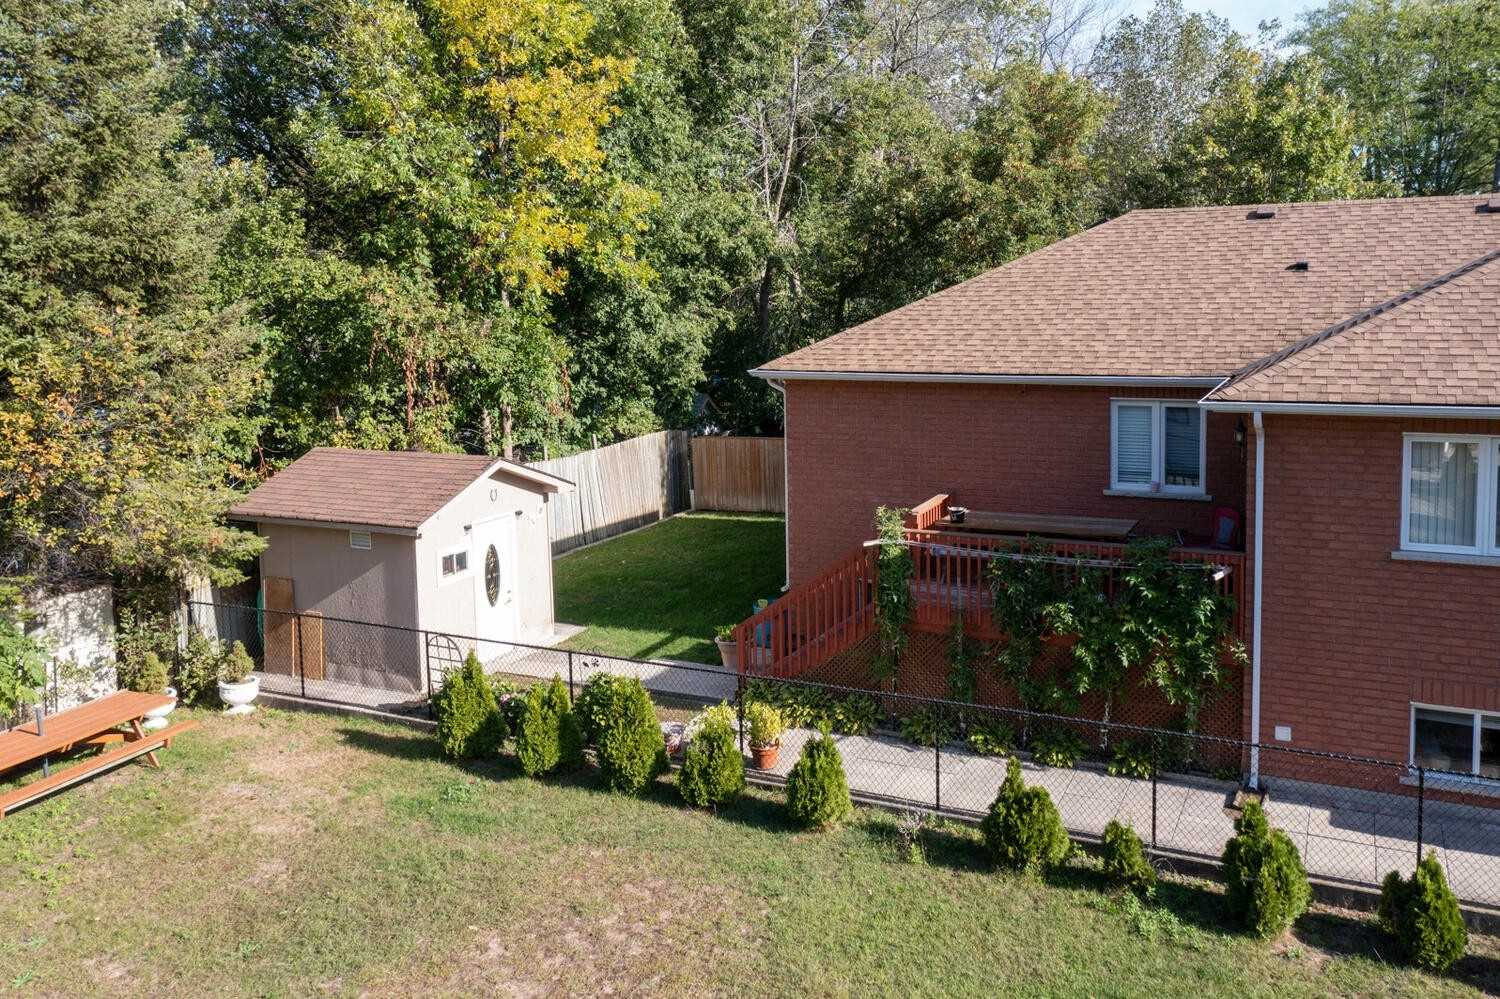 Detached house For Sale In Wasaga Beach - 72 Forest Ave, Wasaga Beach, Ontario, Canada L9Z2K4 , 3 Bedrooms Bedrooms, ,3 BathroomsBathrooms,Detached,For Sale,Forest